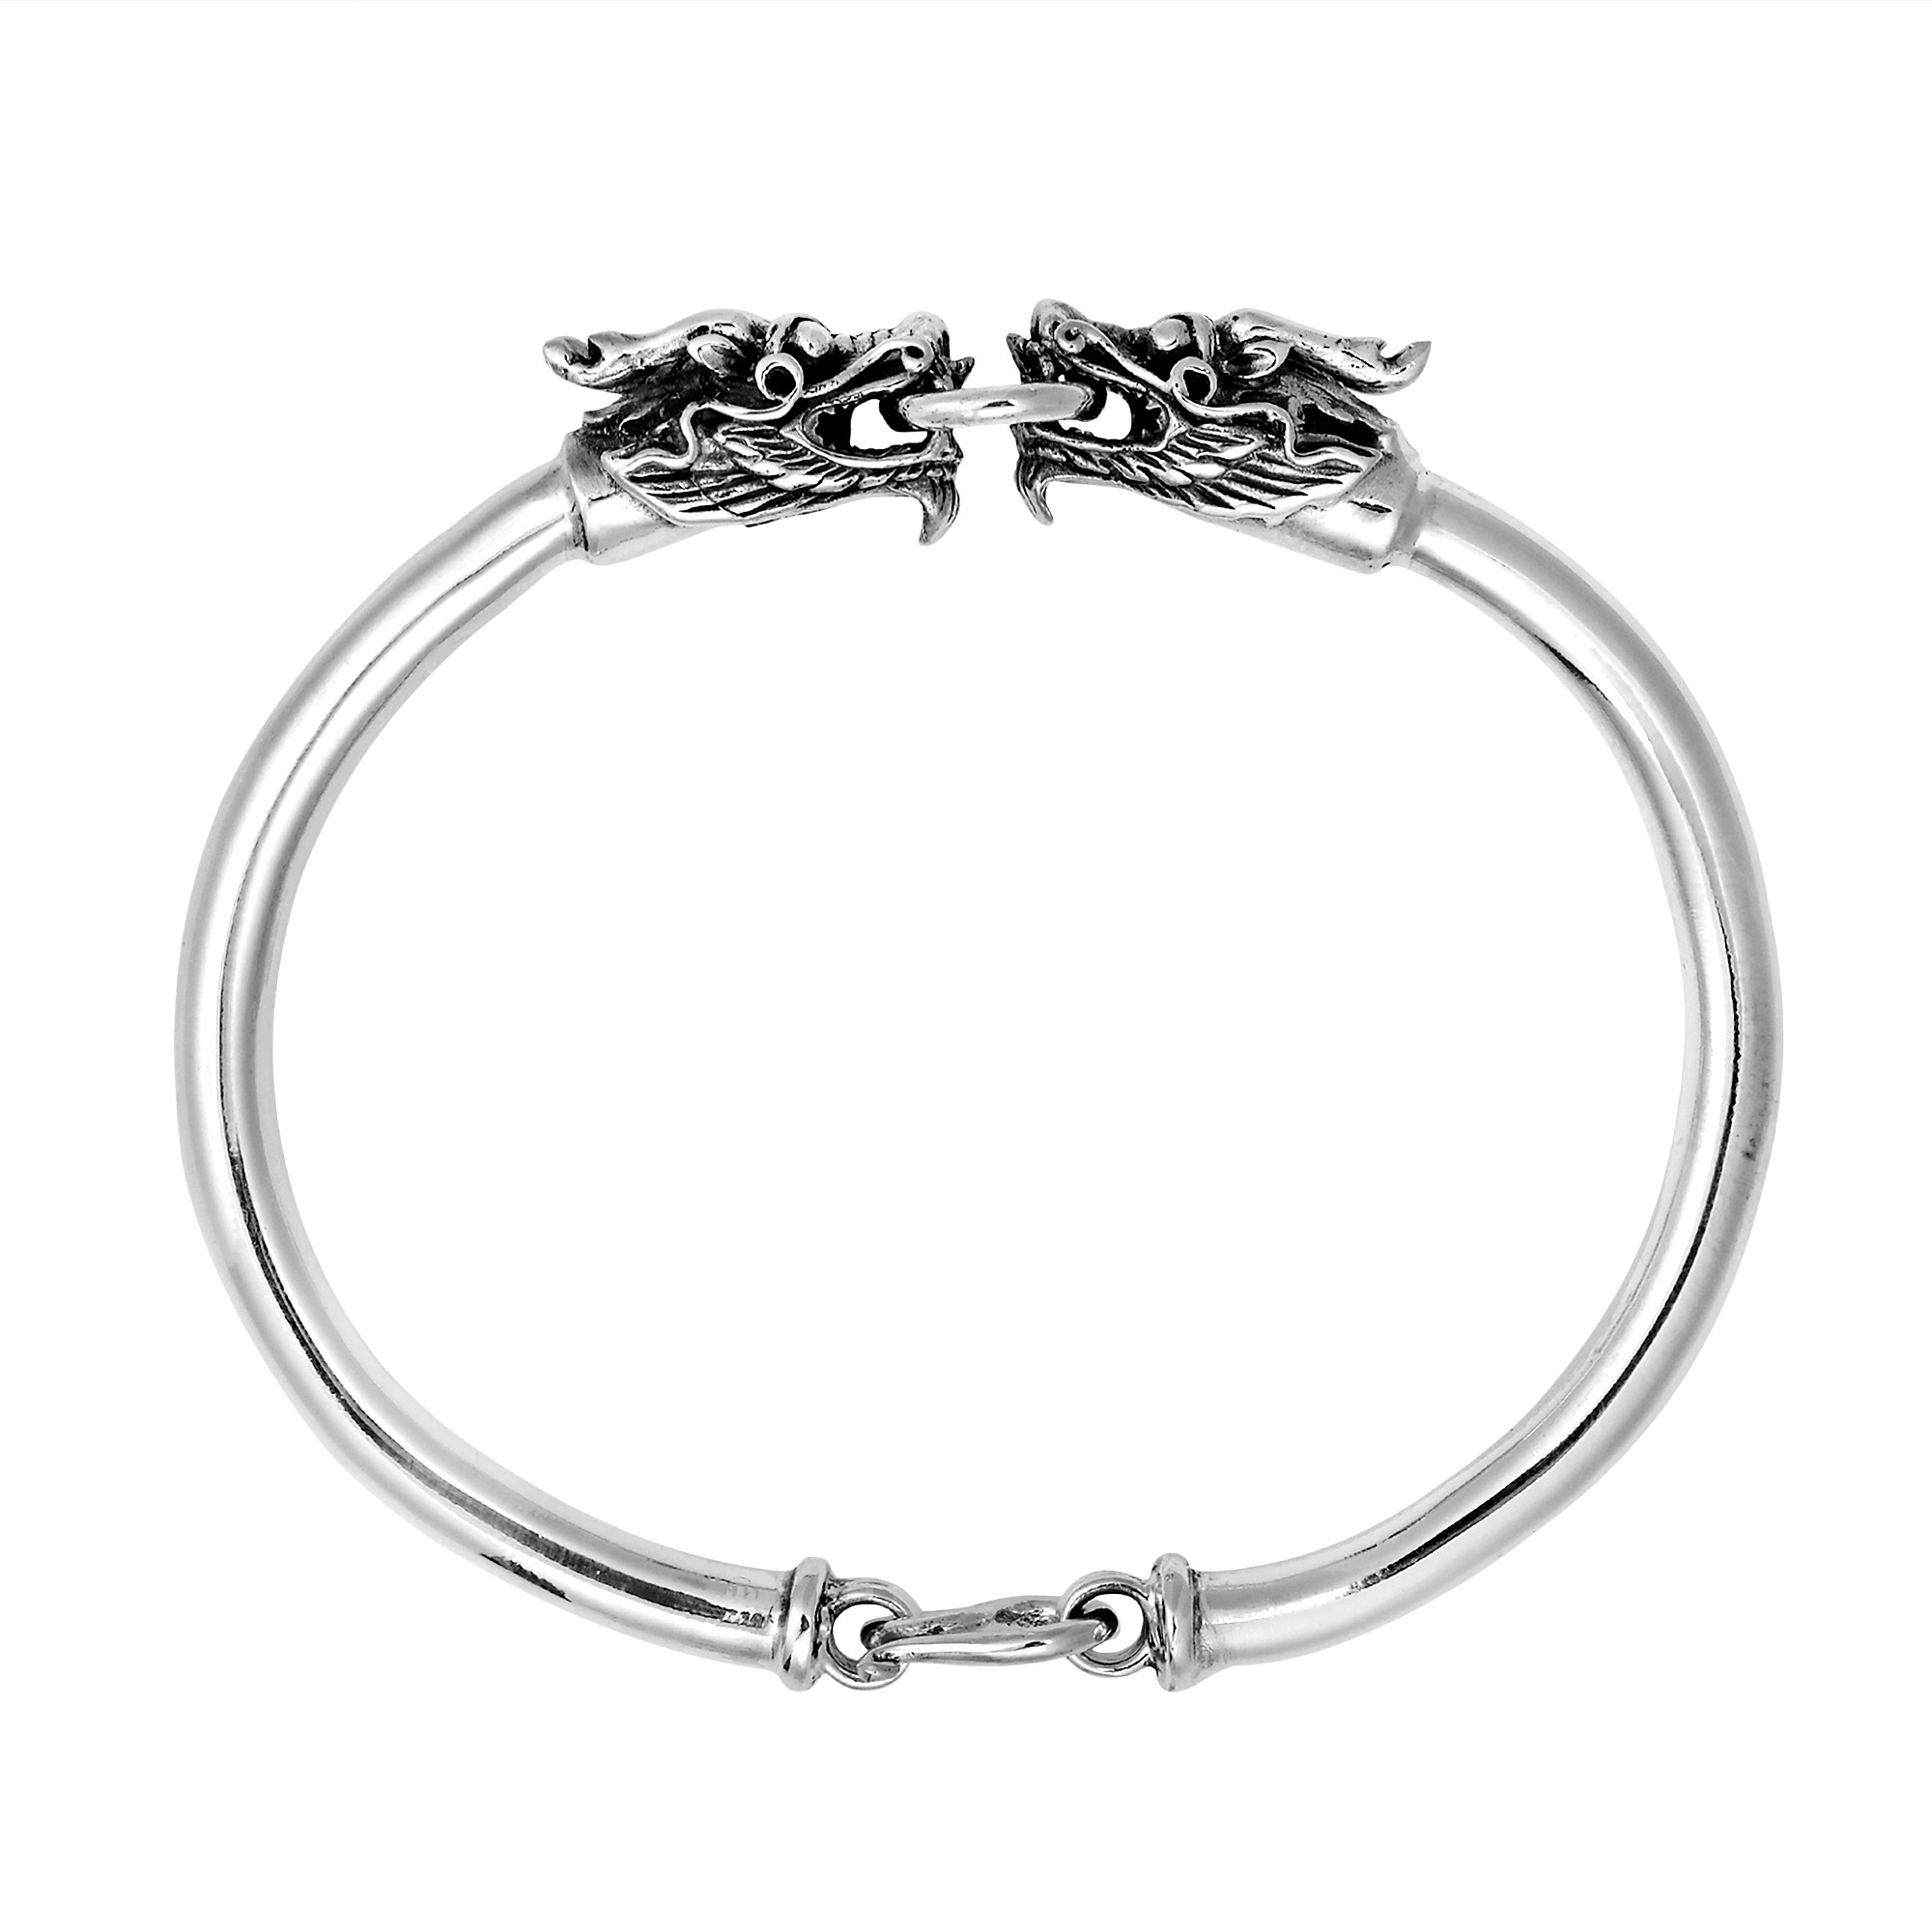 acacia a special pujjszfpxxbufpxa baked layer female antique pure thin product bracelet novelty fresh silver multi